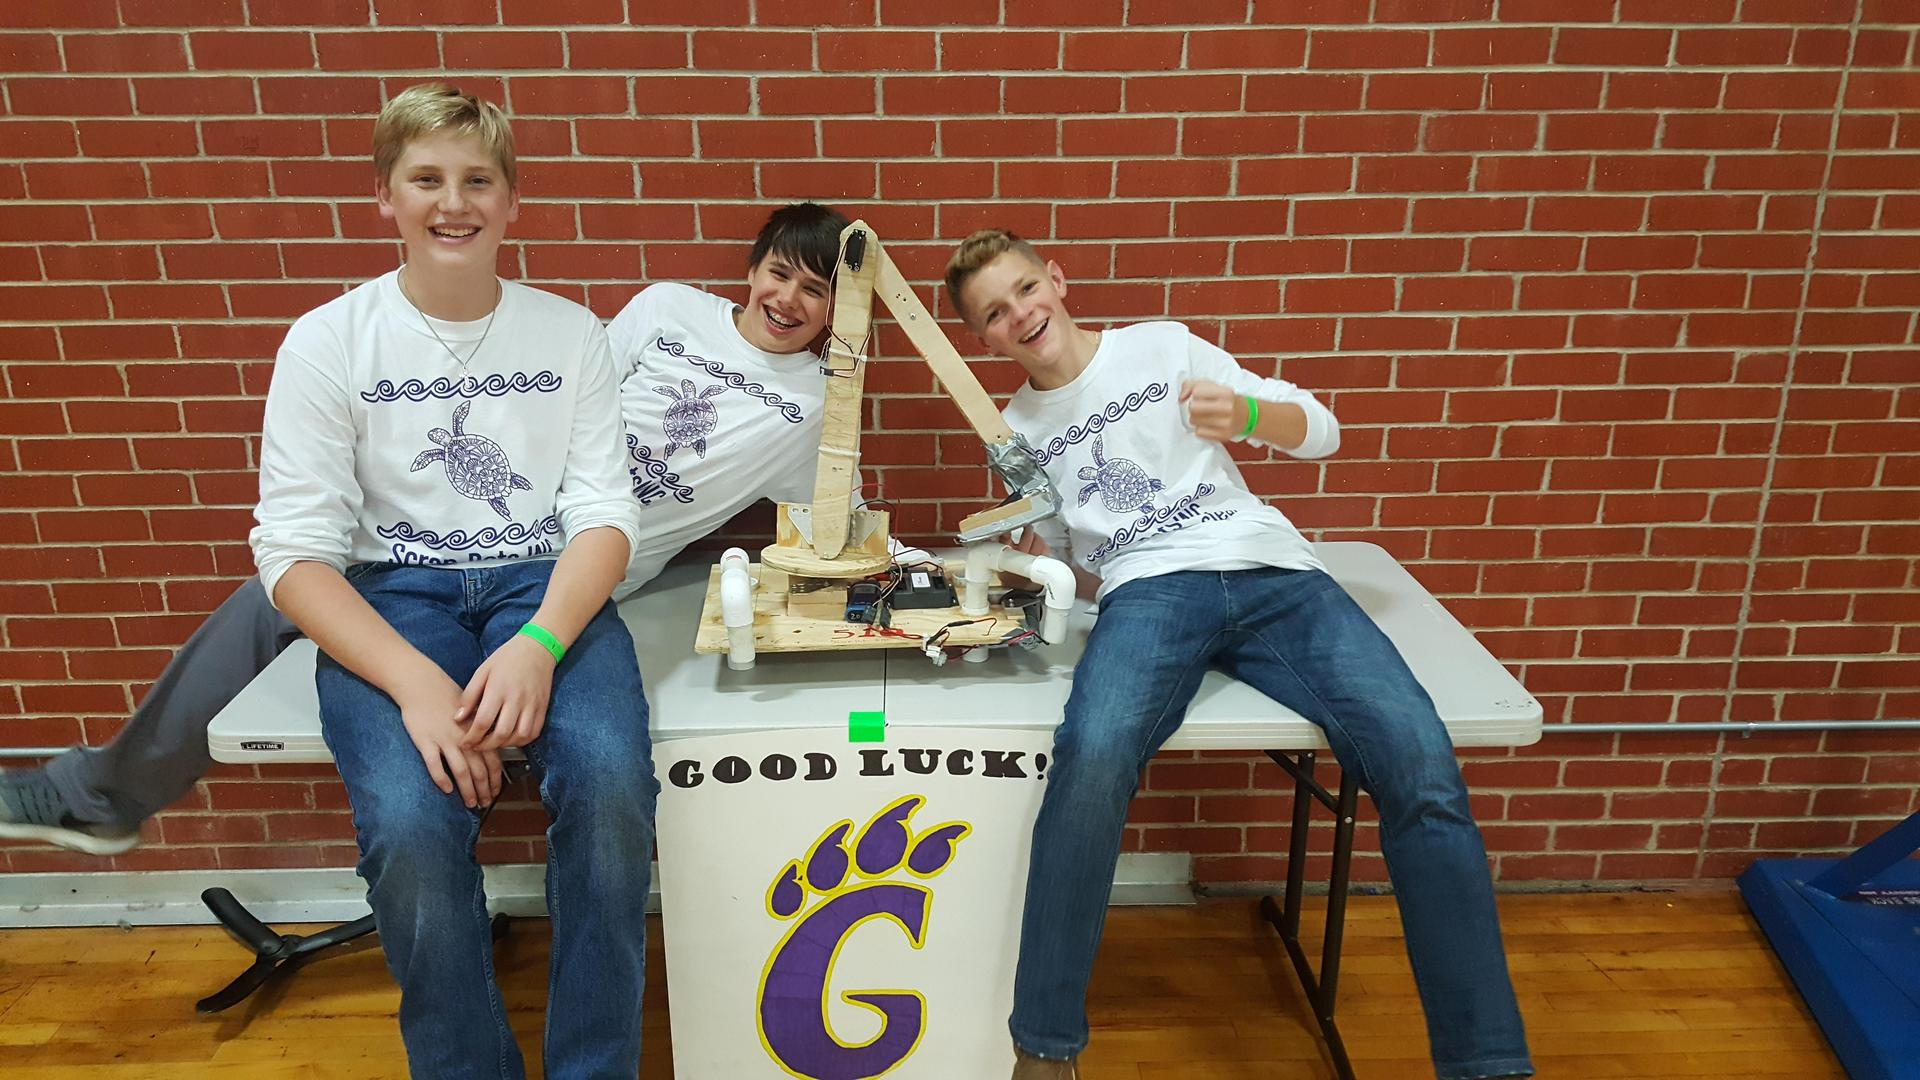 Picture from BEST Robotics Competition 2018. Left: Carter Whitfield. Center: Cody Warren. Right: Kolton Ferguson.